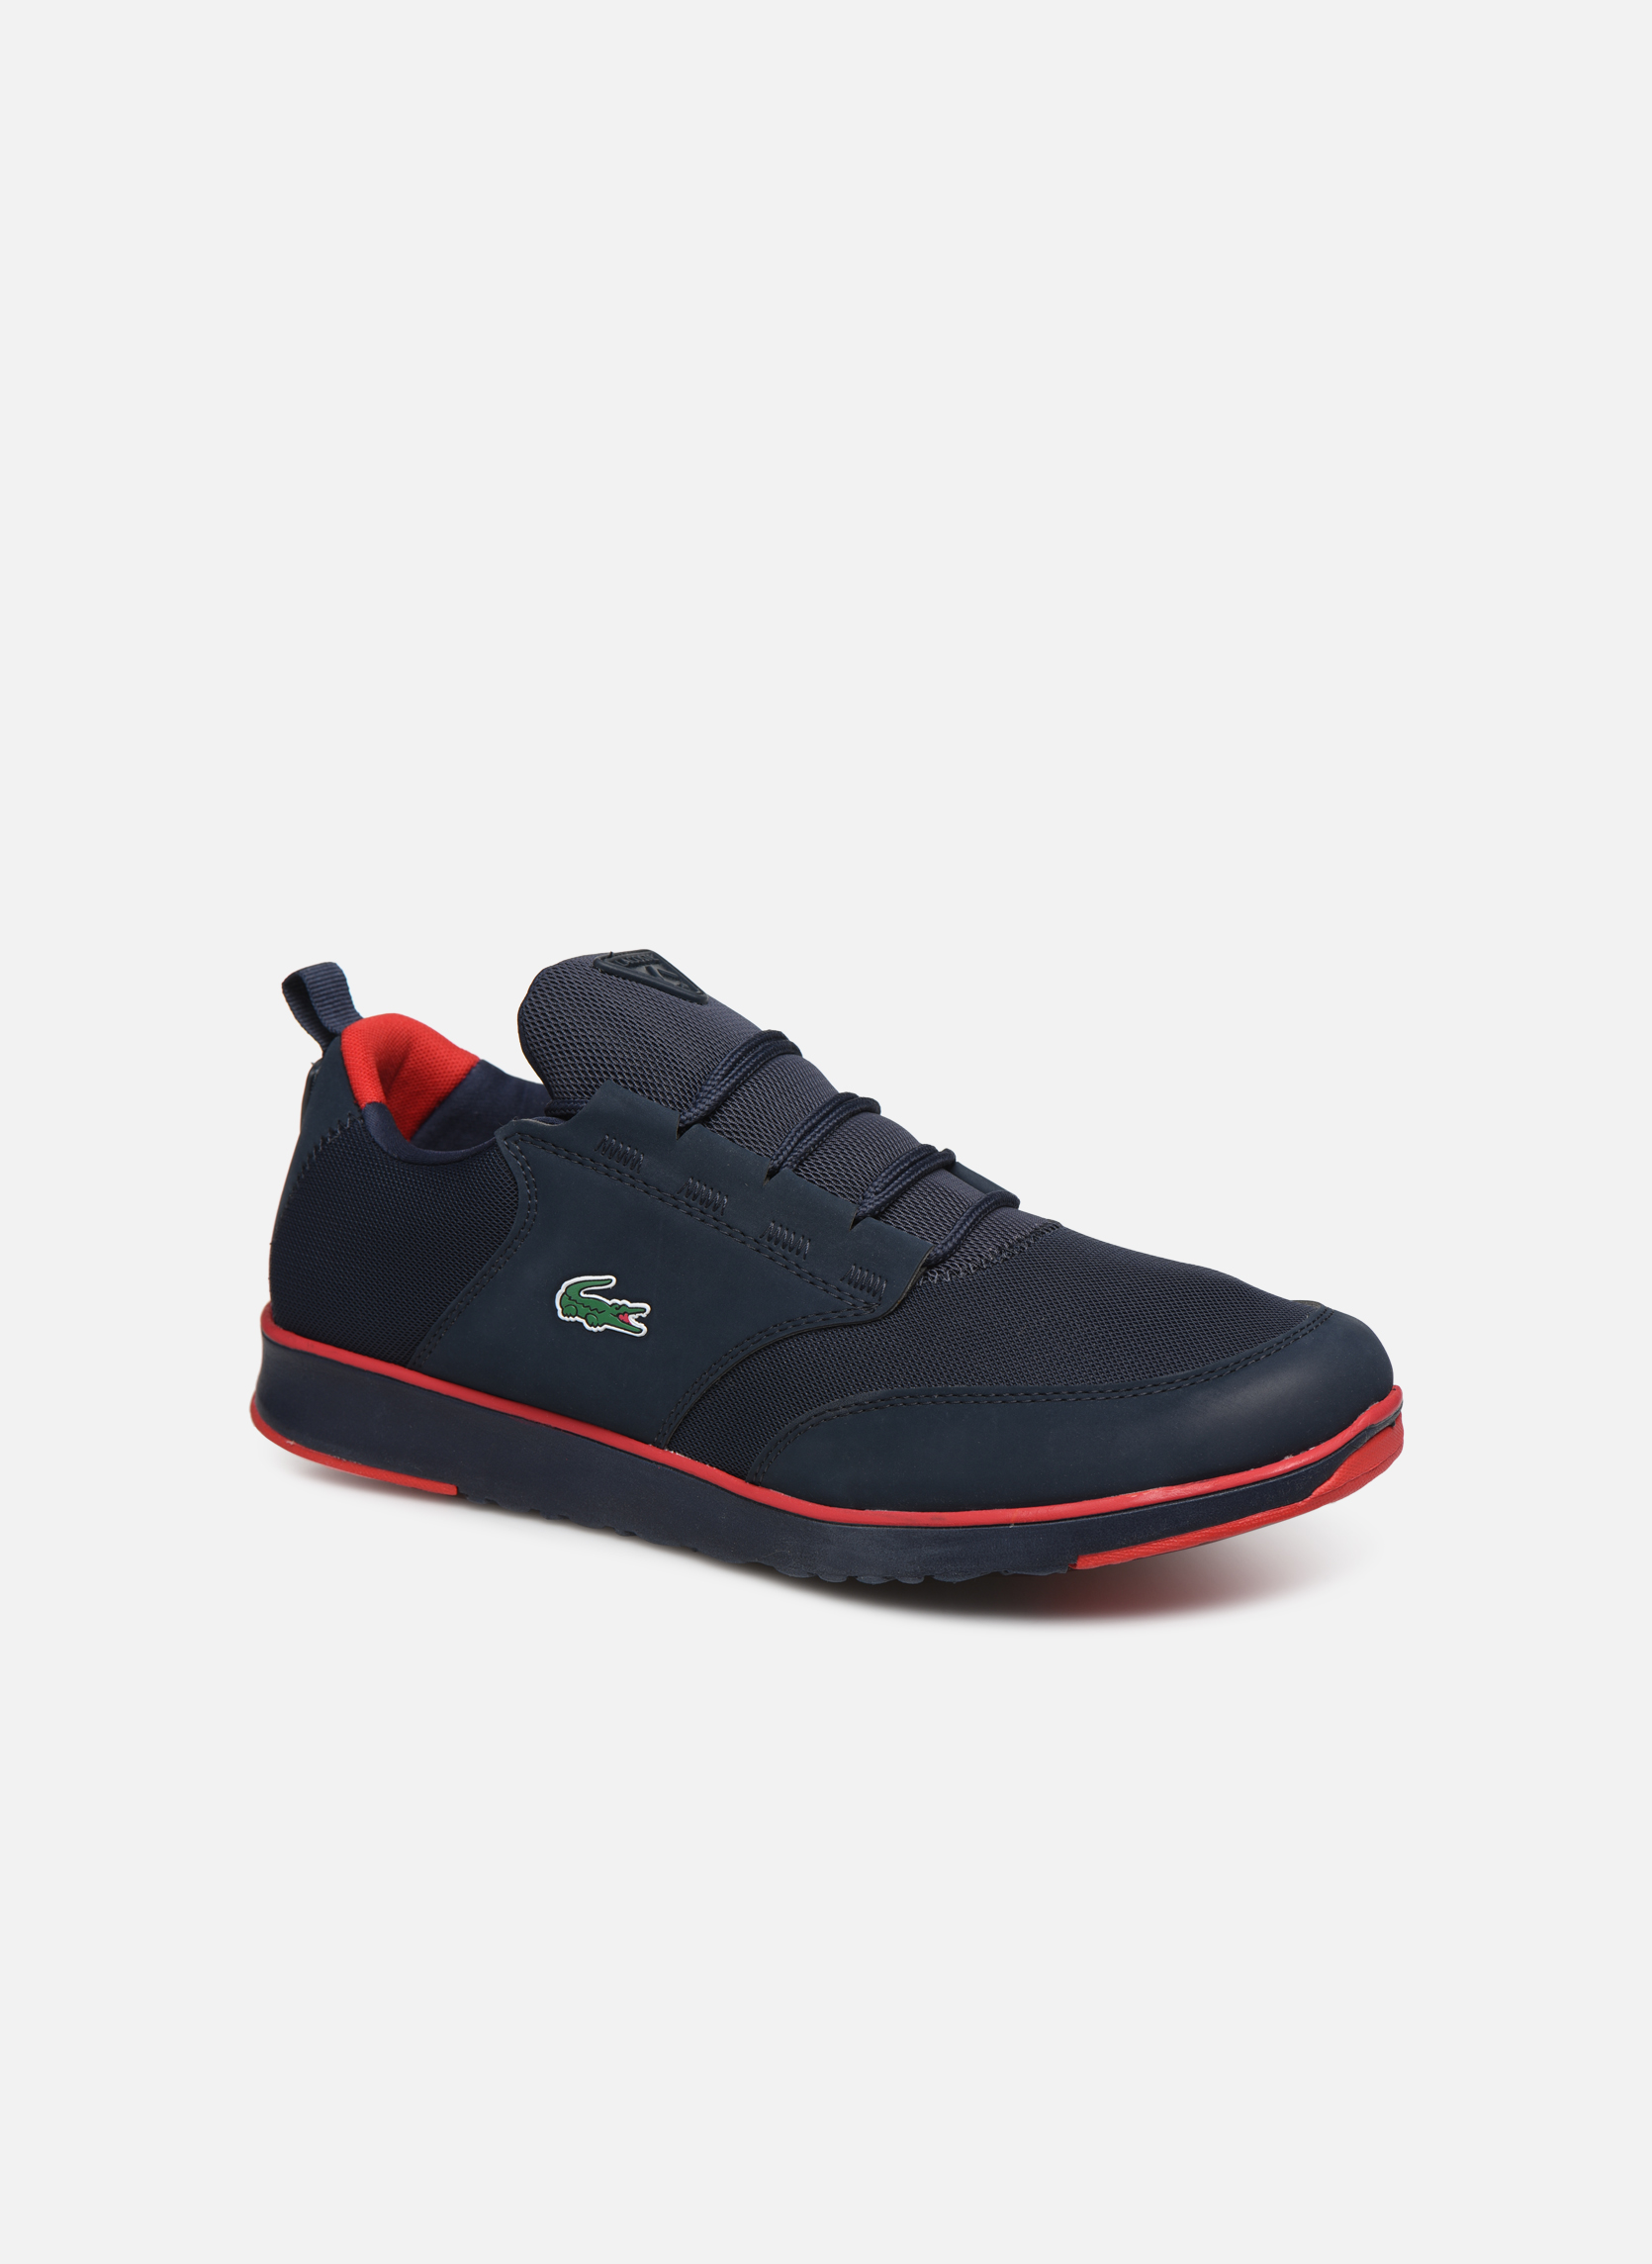 Baskets Homme L.Ight 116 1